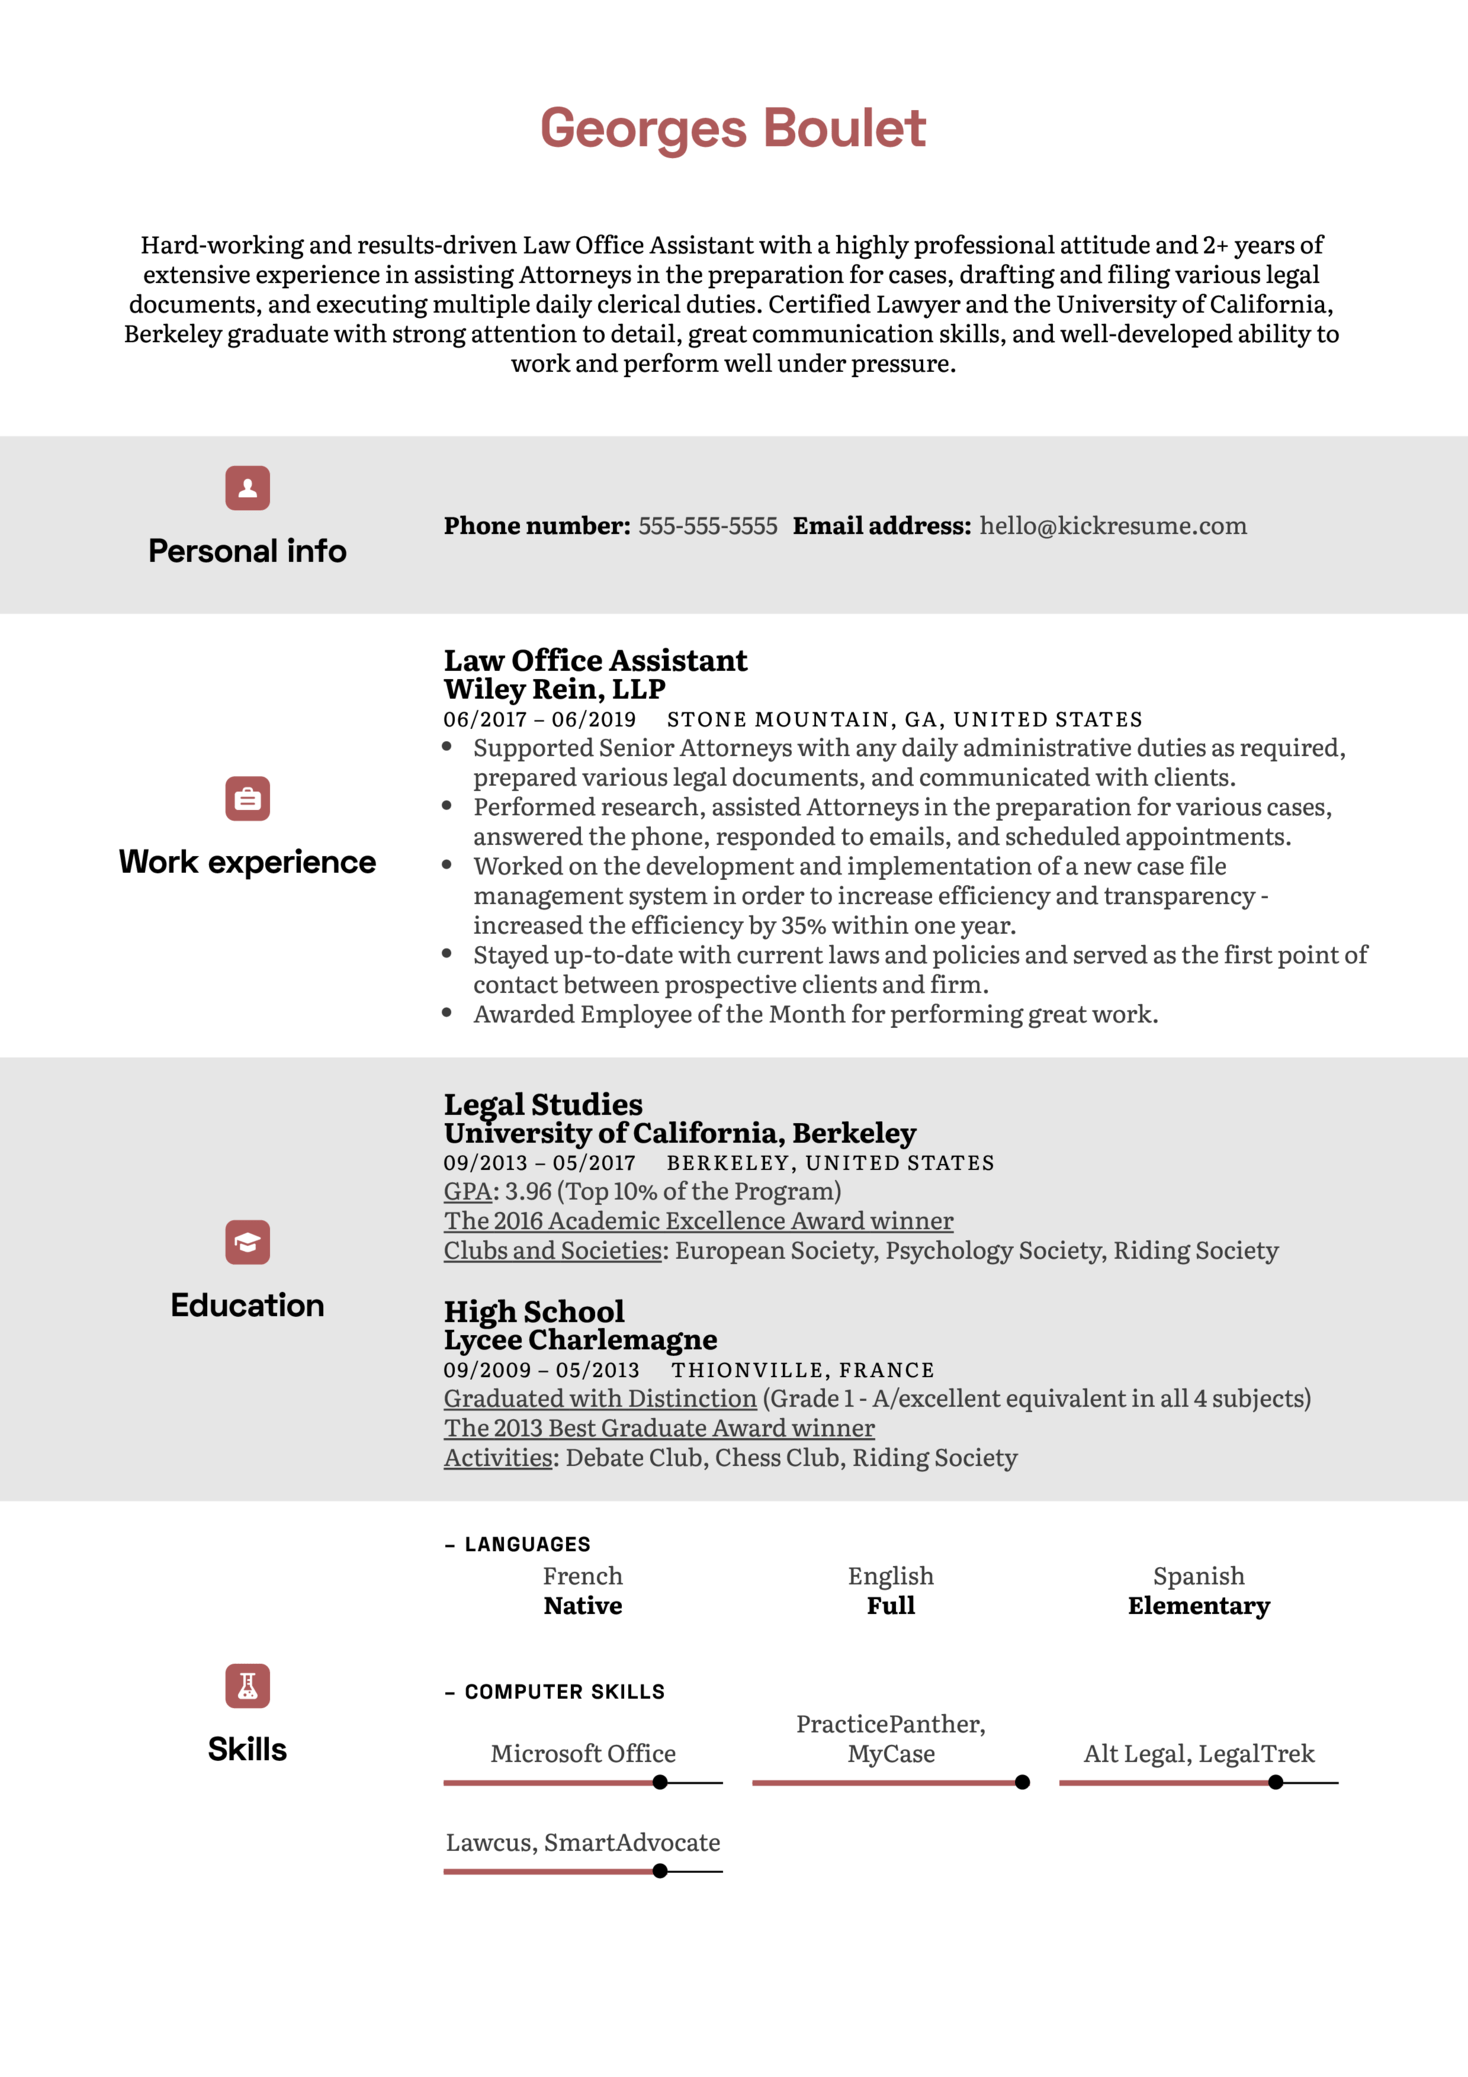 Law Office Assistant Resume Sample (Parte 1)